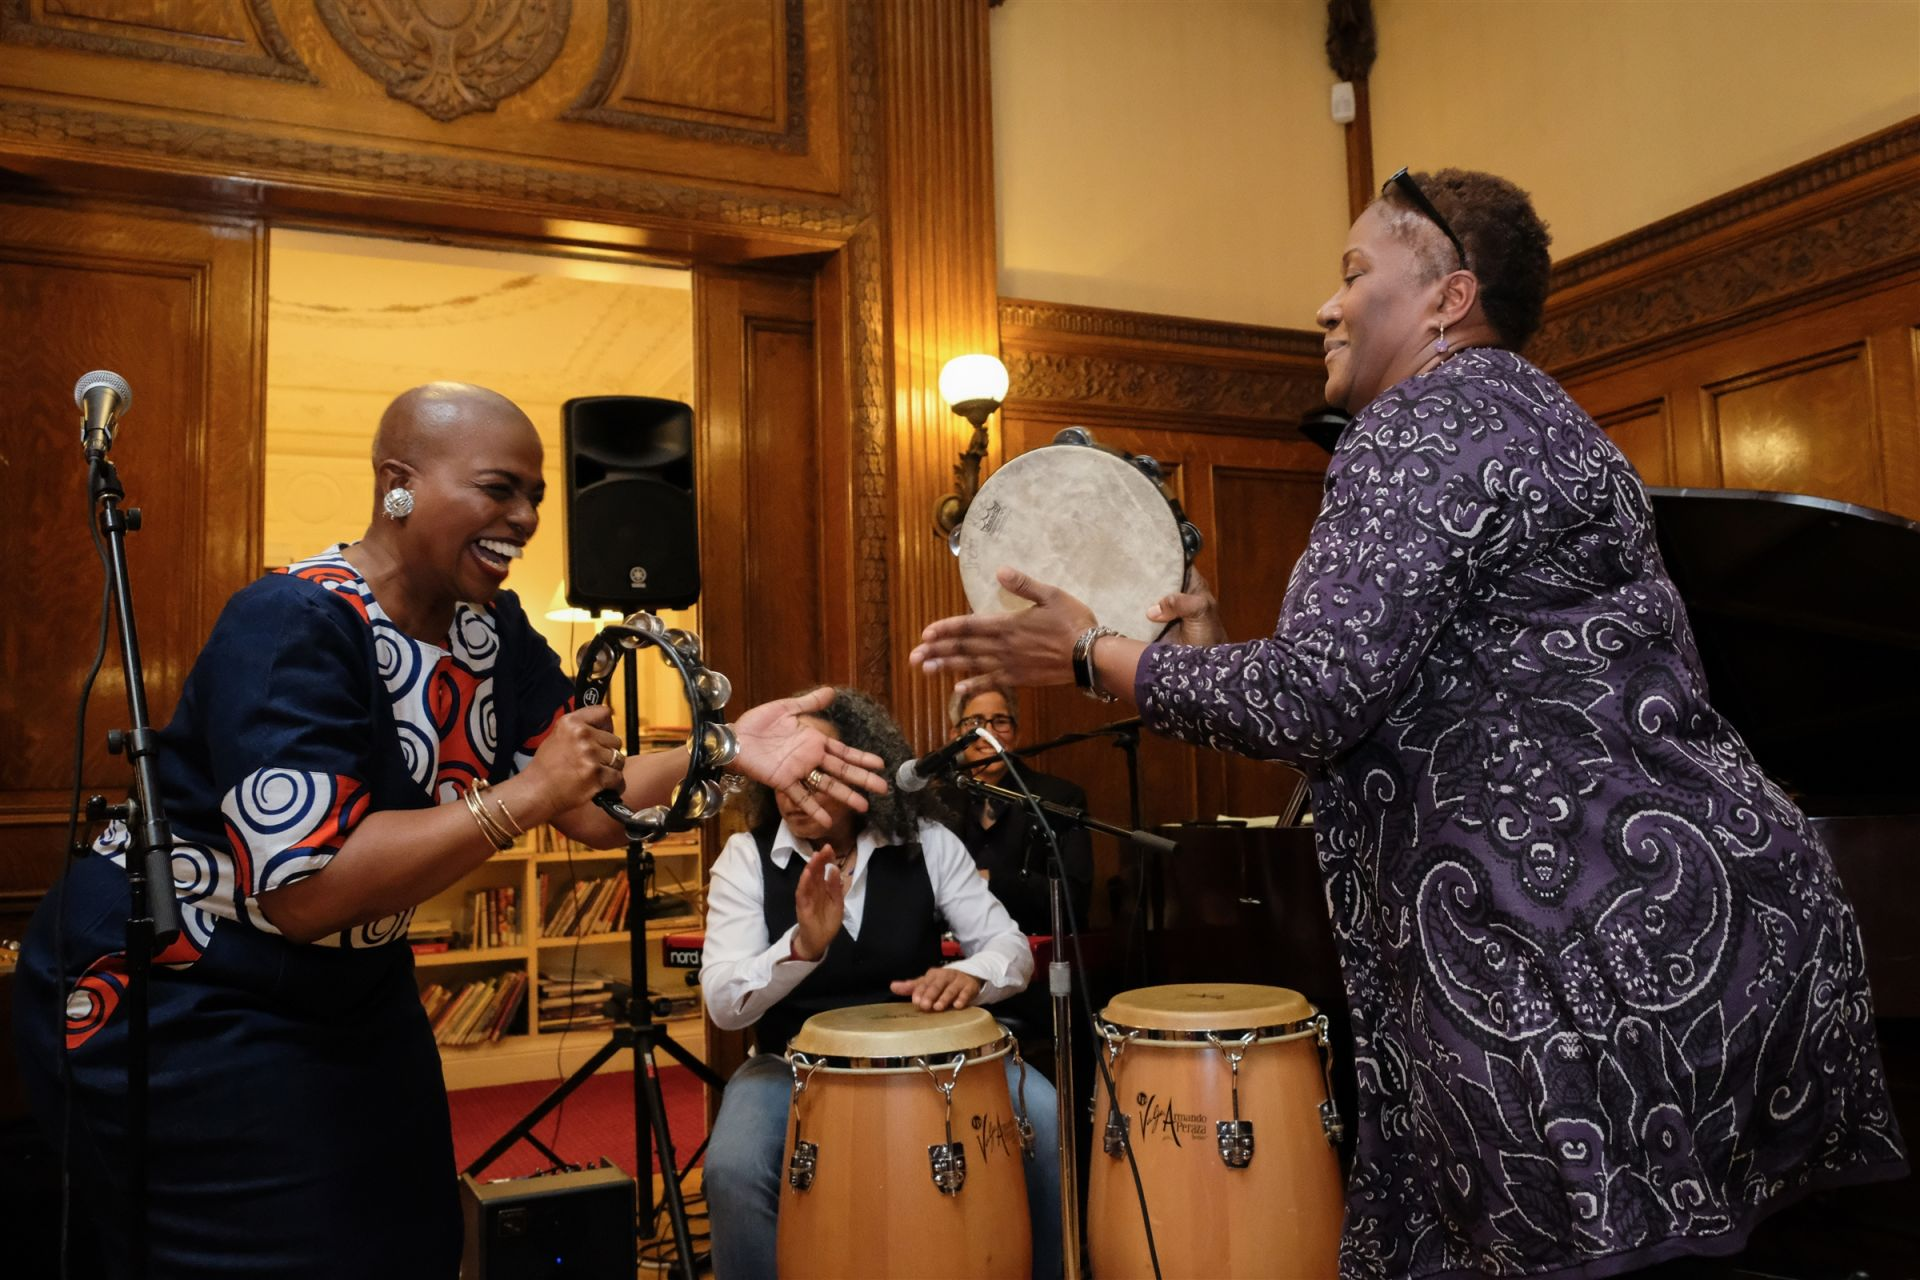 A Night of Music from the African Diaspora